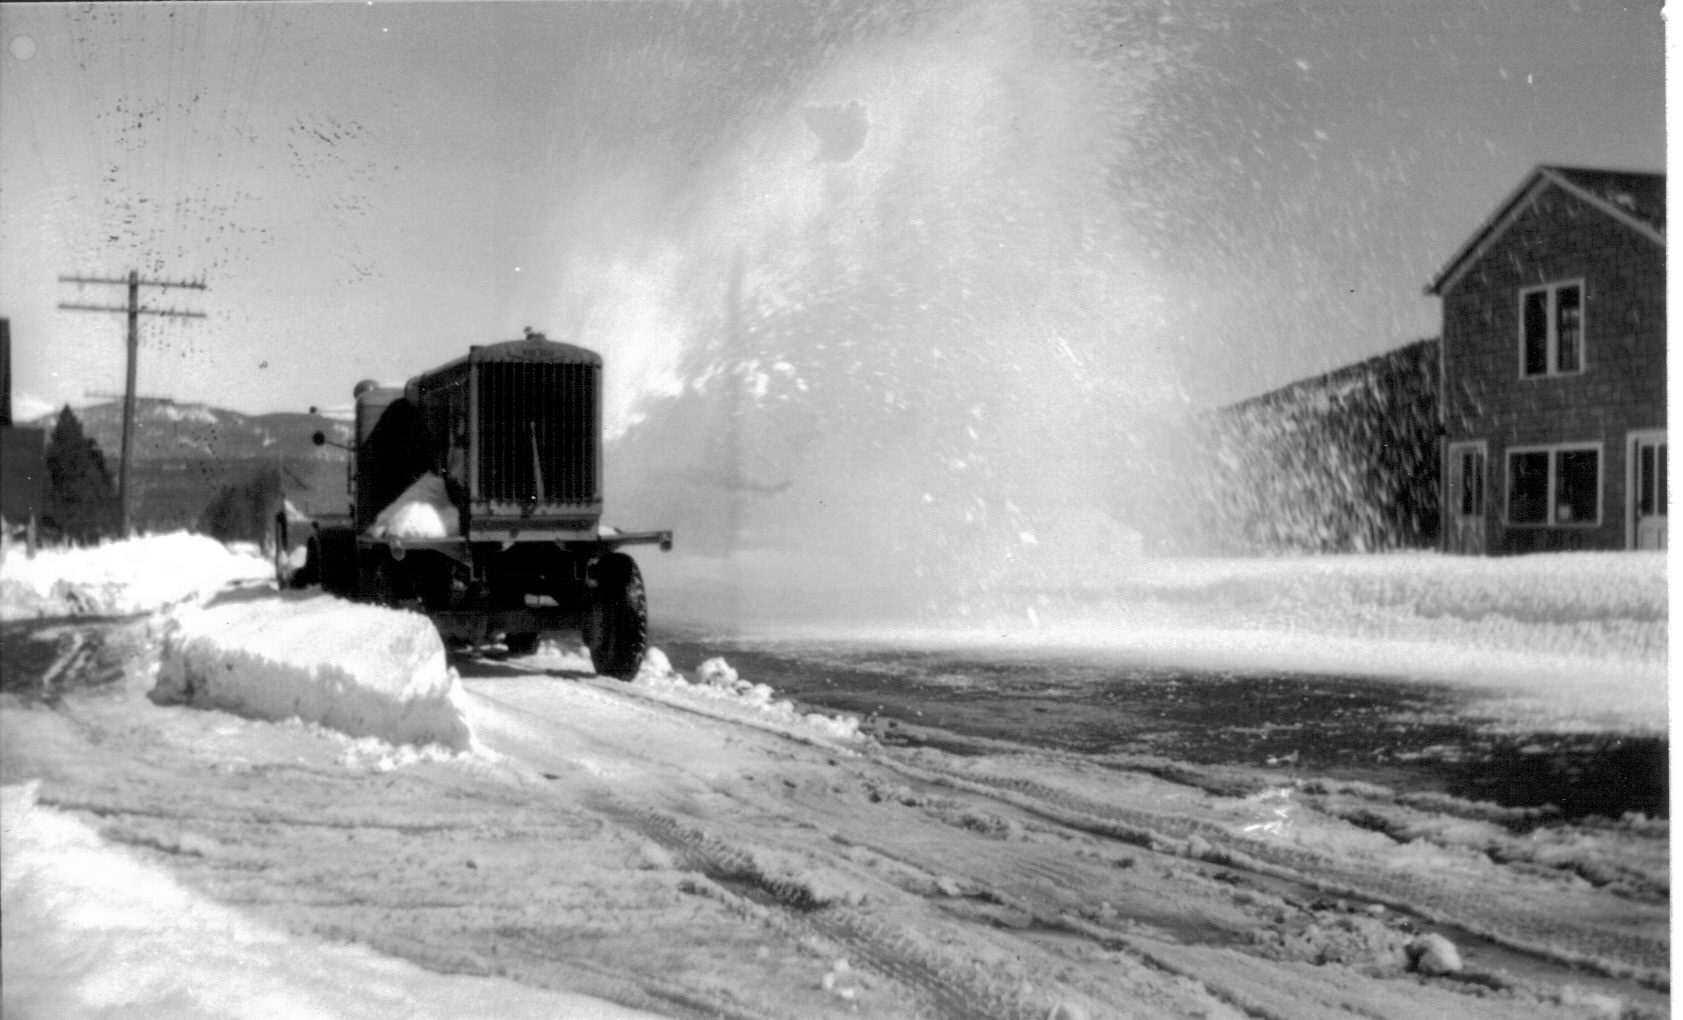 While Colorado might average 300 days of sunshine, the snowfall average in Summit County ranges from 160 to over 300 inches depending on the season. In this image, a snowplow works to clear Frisco streets after a snowstorm.